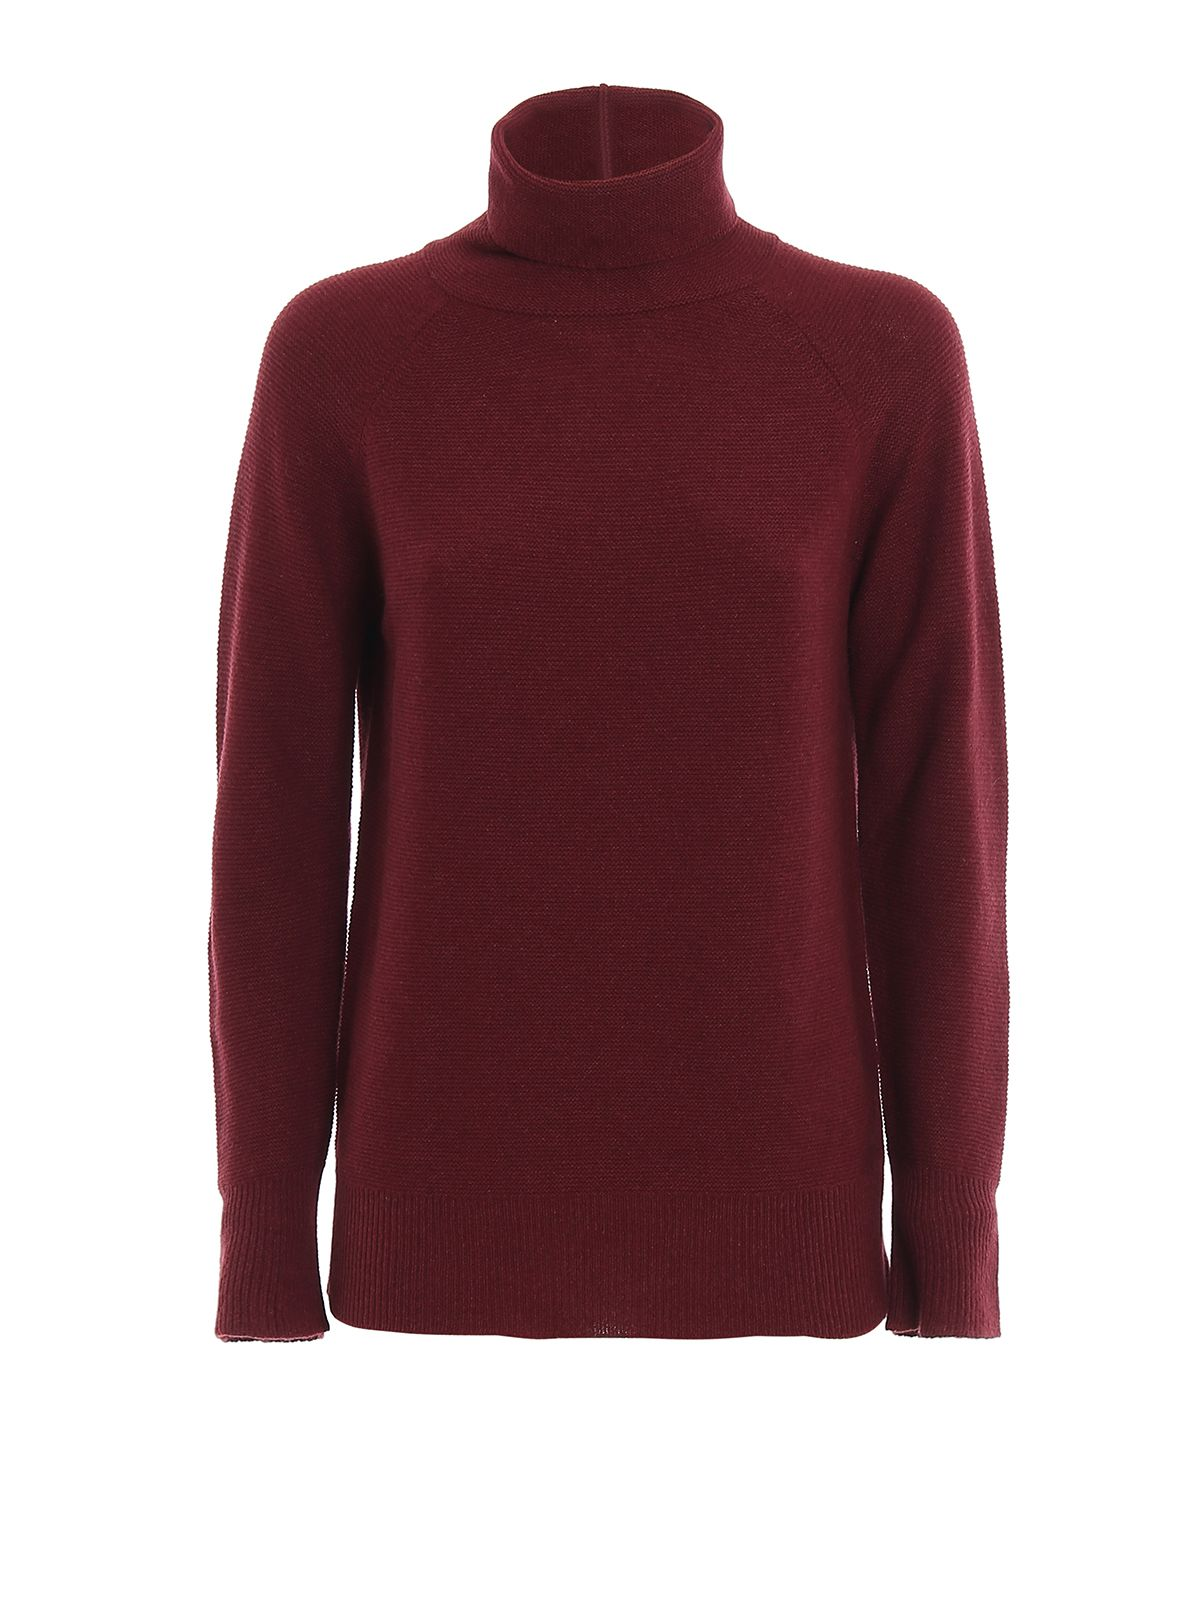 Fabiana Filippi FABIANA FILIPPI WOMEN'S BURGUNDY WOOL SWEATER